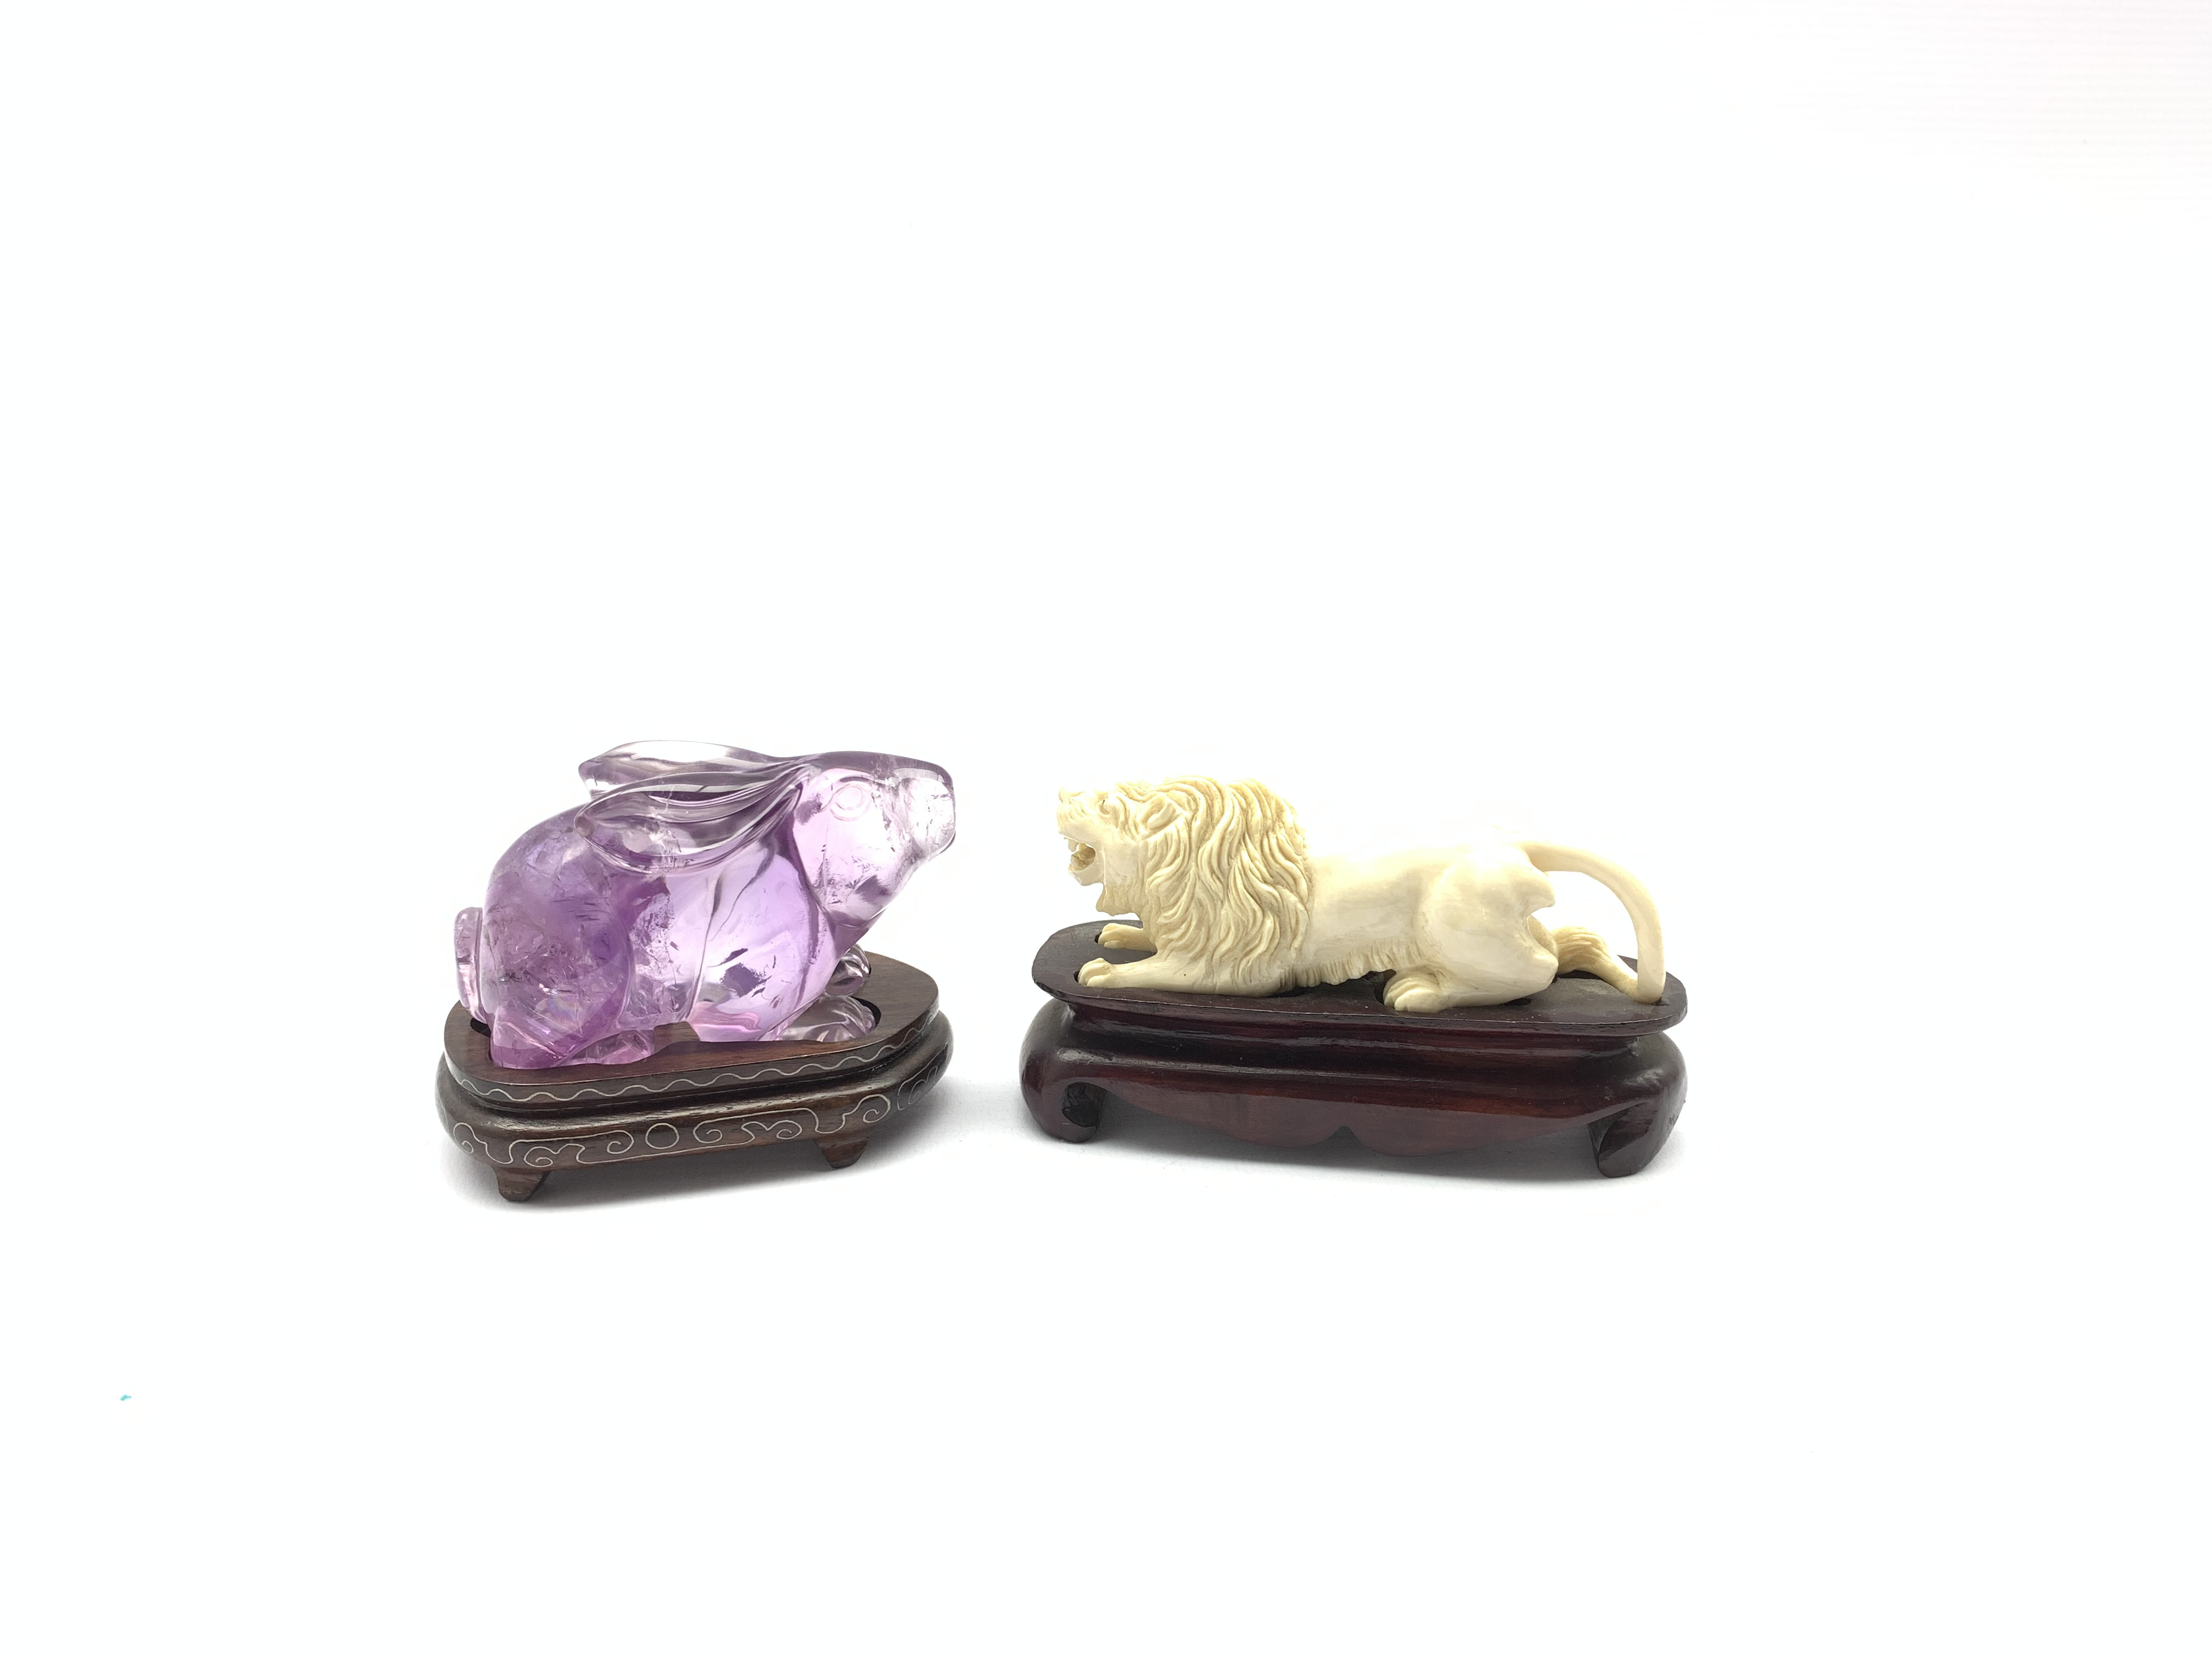 Oriental amethyst glass rabbit on a wooden stand W9cm and an early 20th century carved ivory figure - Image 8 of 11